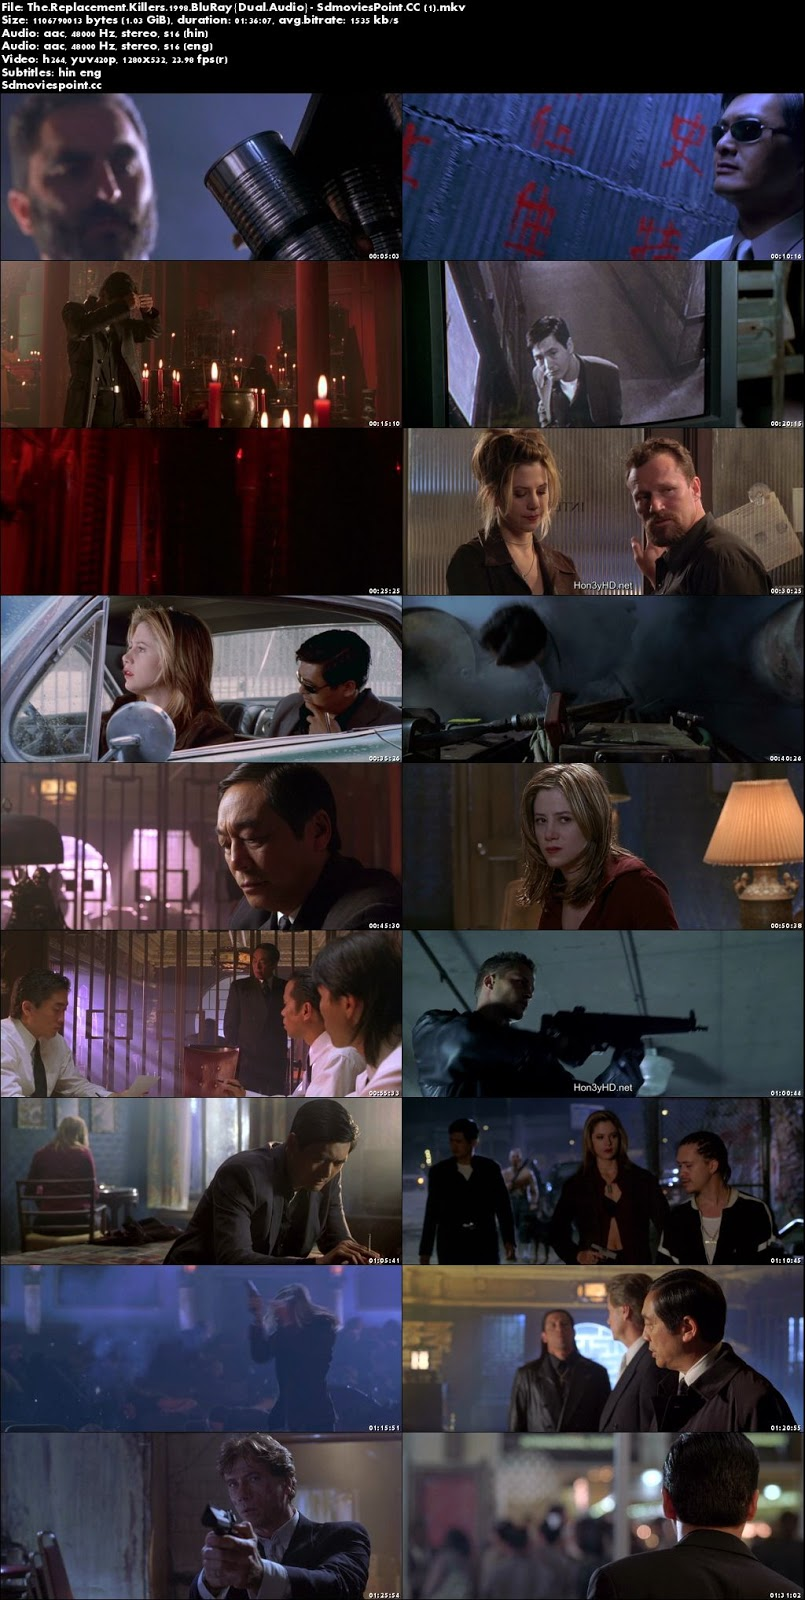 screen shot The Replacement Killers 1998 Dual Audio 720p BRRip 1.03Gb x264